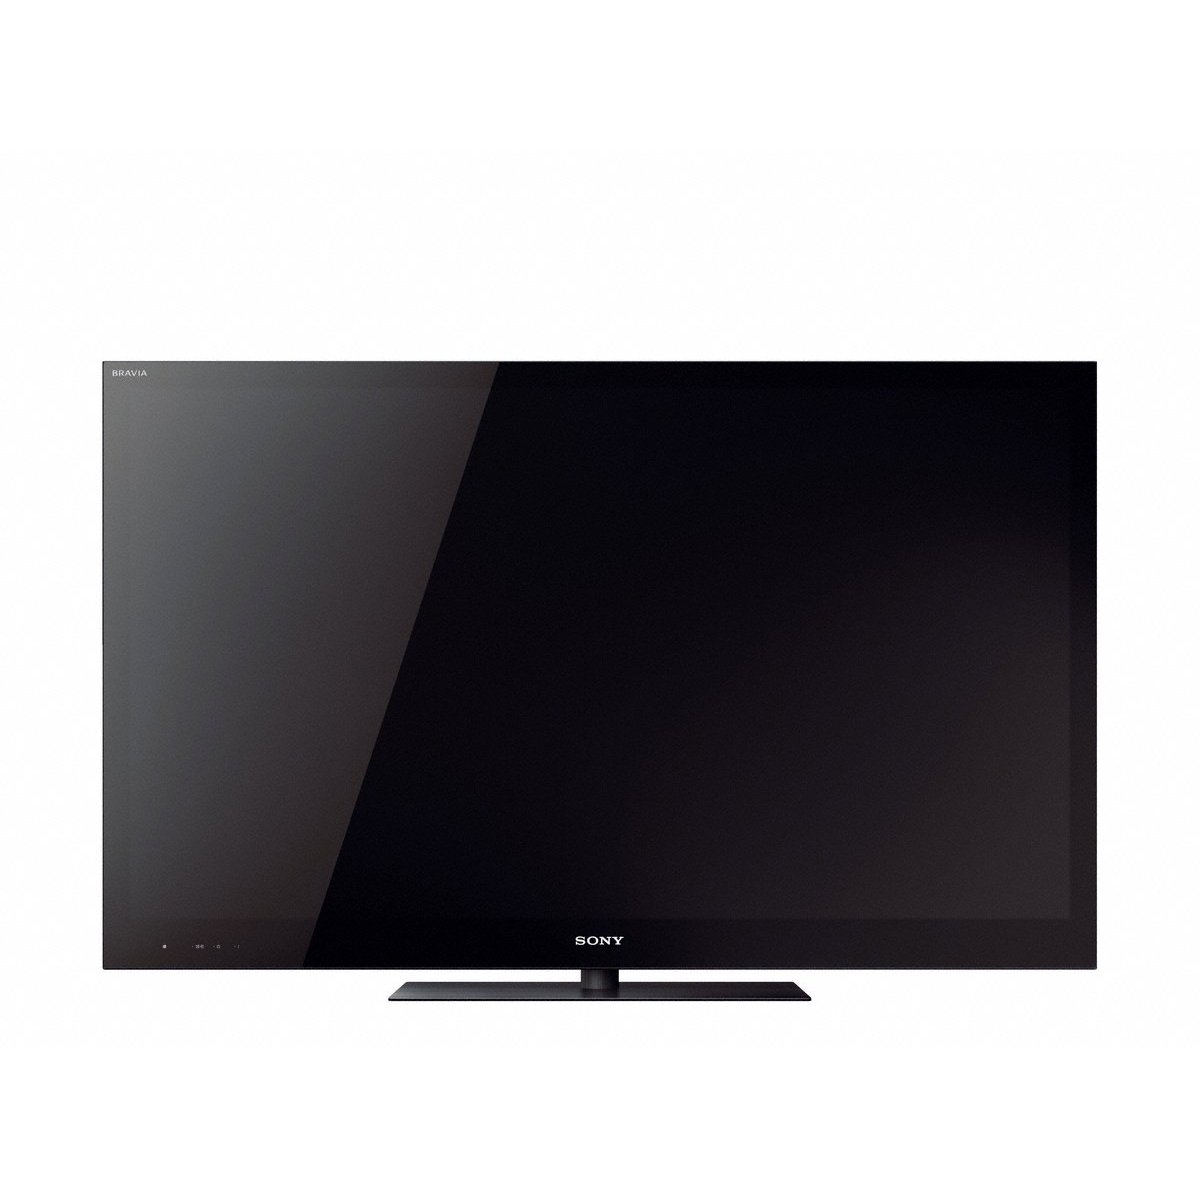 Sony 55 Inch Led Tv Brand Discounts Buy Televisions Bravia Lazada Kdl 55hx925 Online At Best